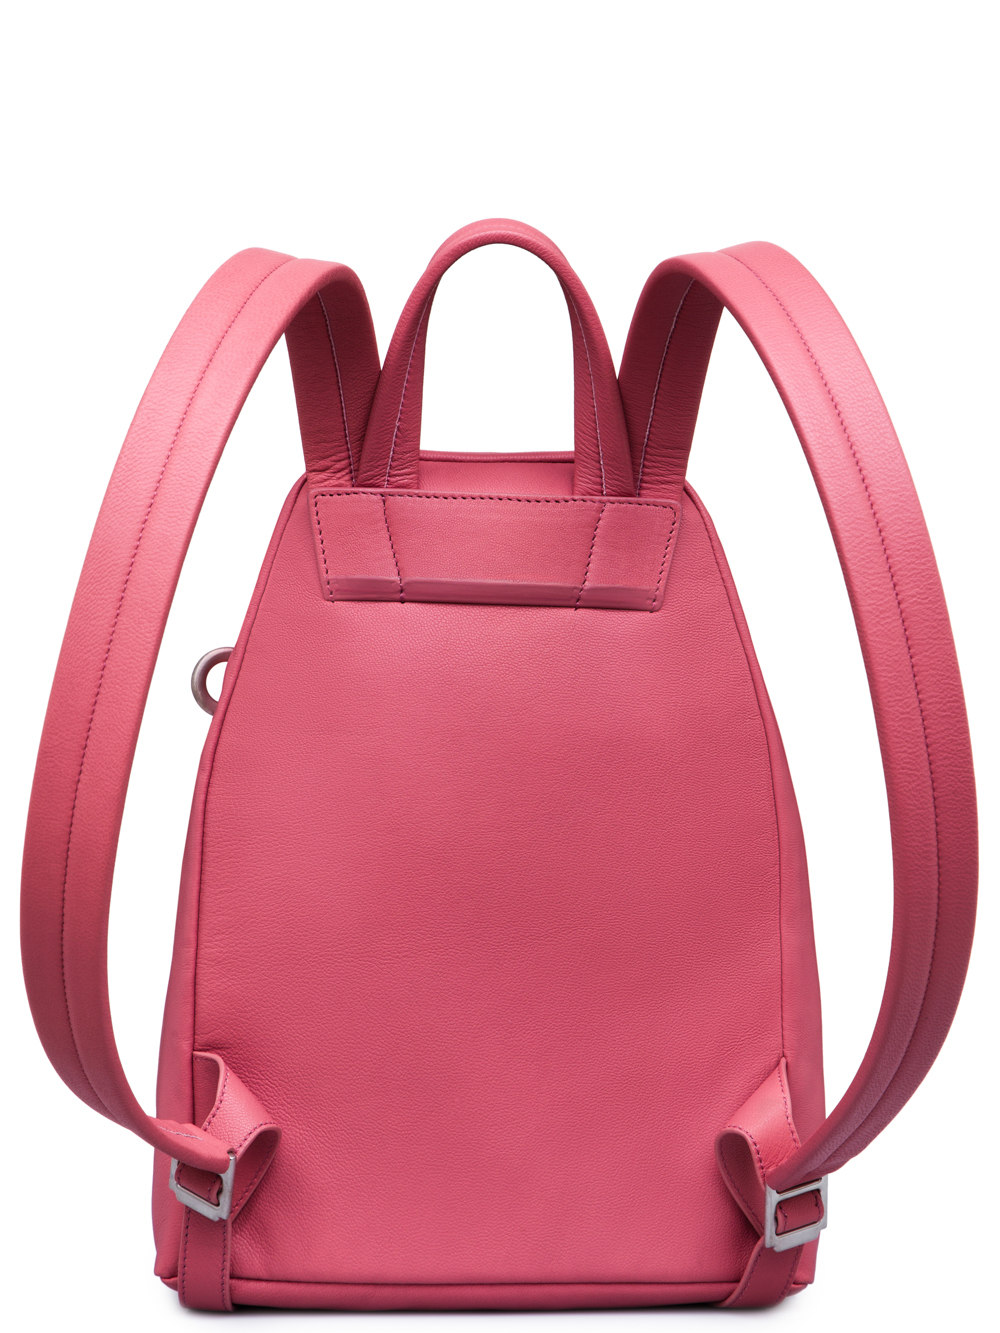 RICK OWENS FW18 SISYPHUS MINI BACKPACK IN PINK GOAT LEATHER